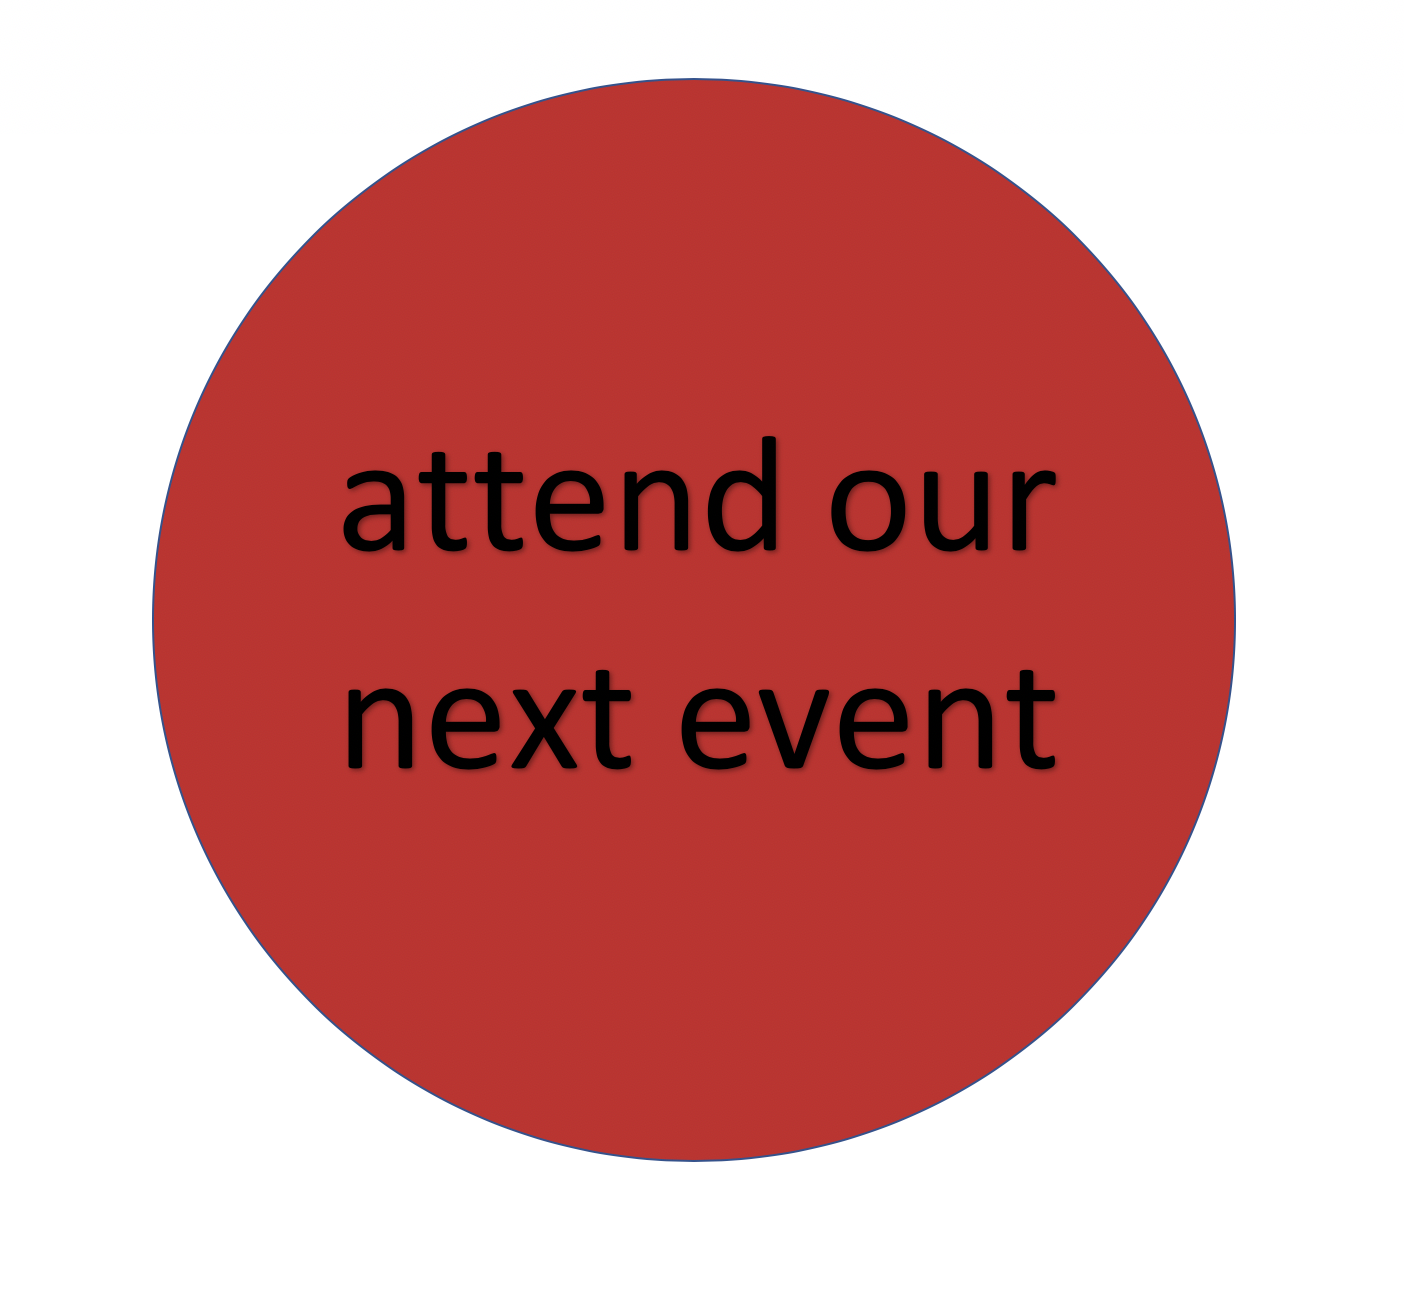 attend-our-next-event